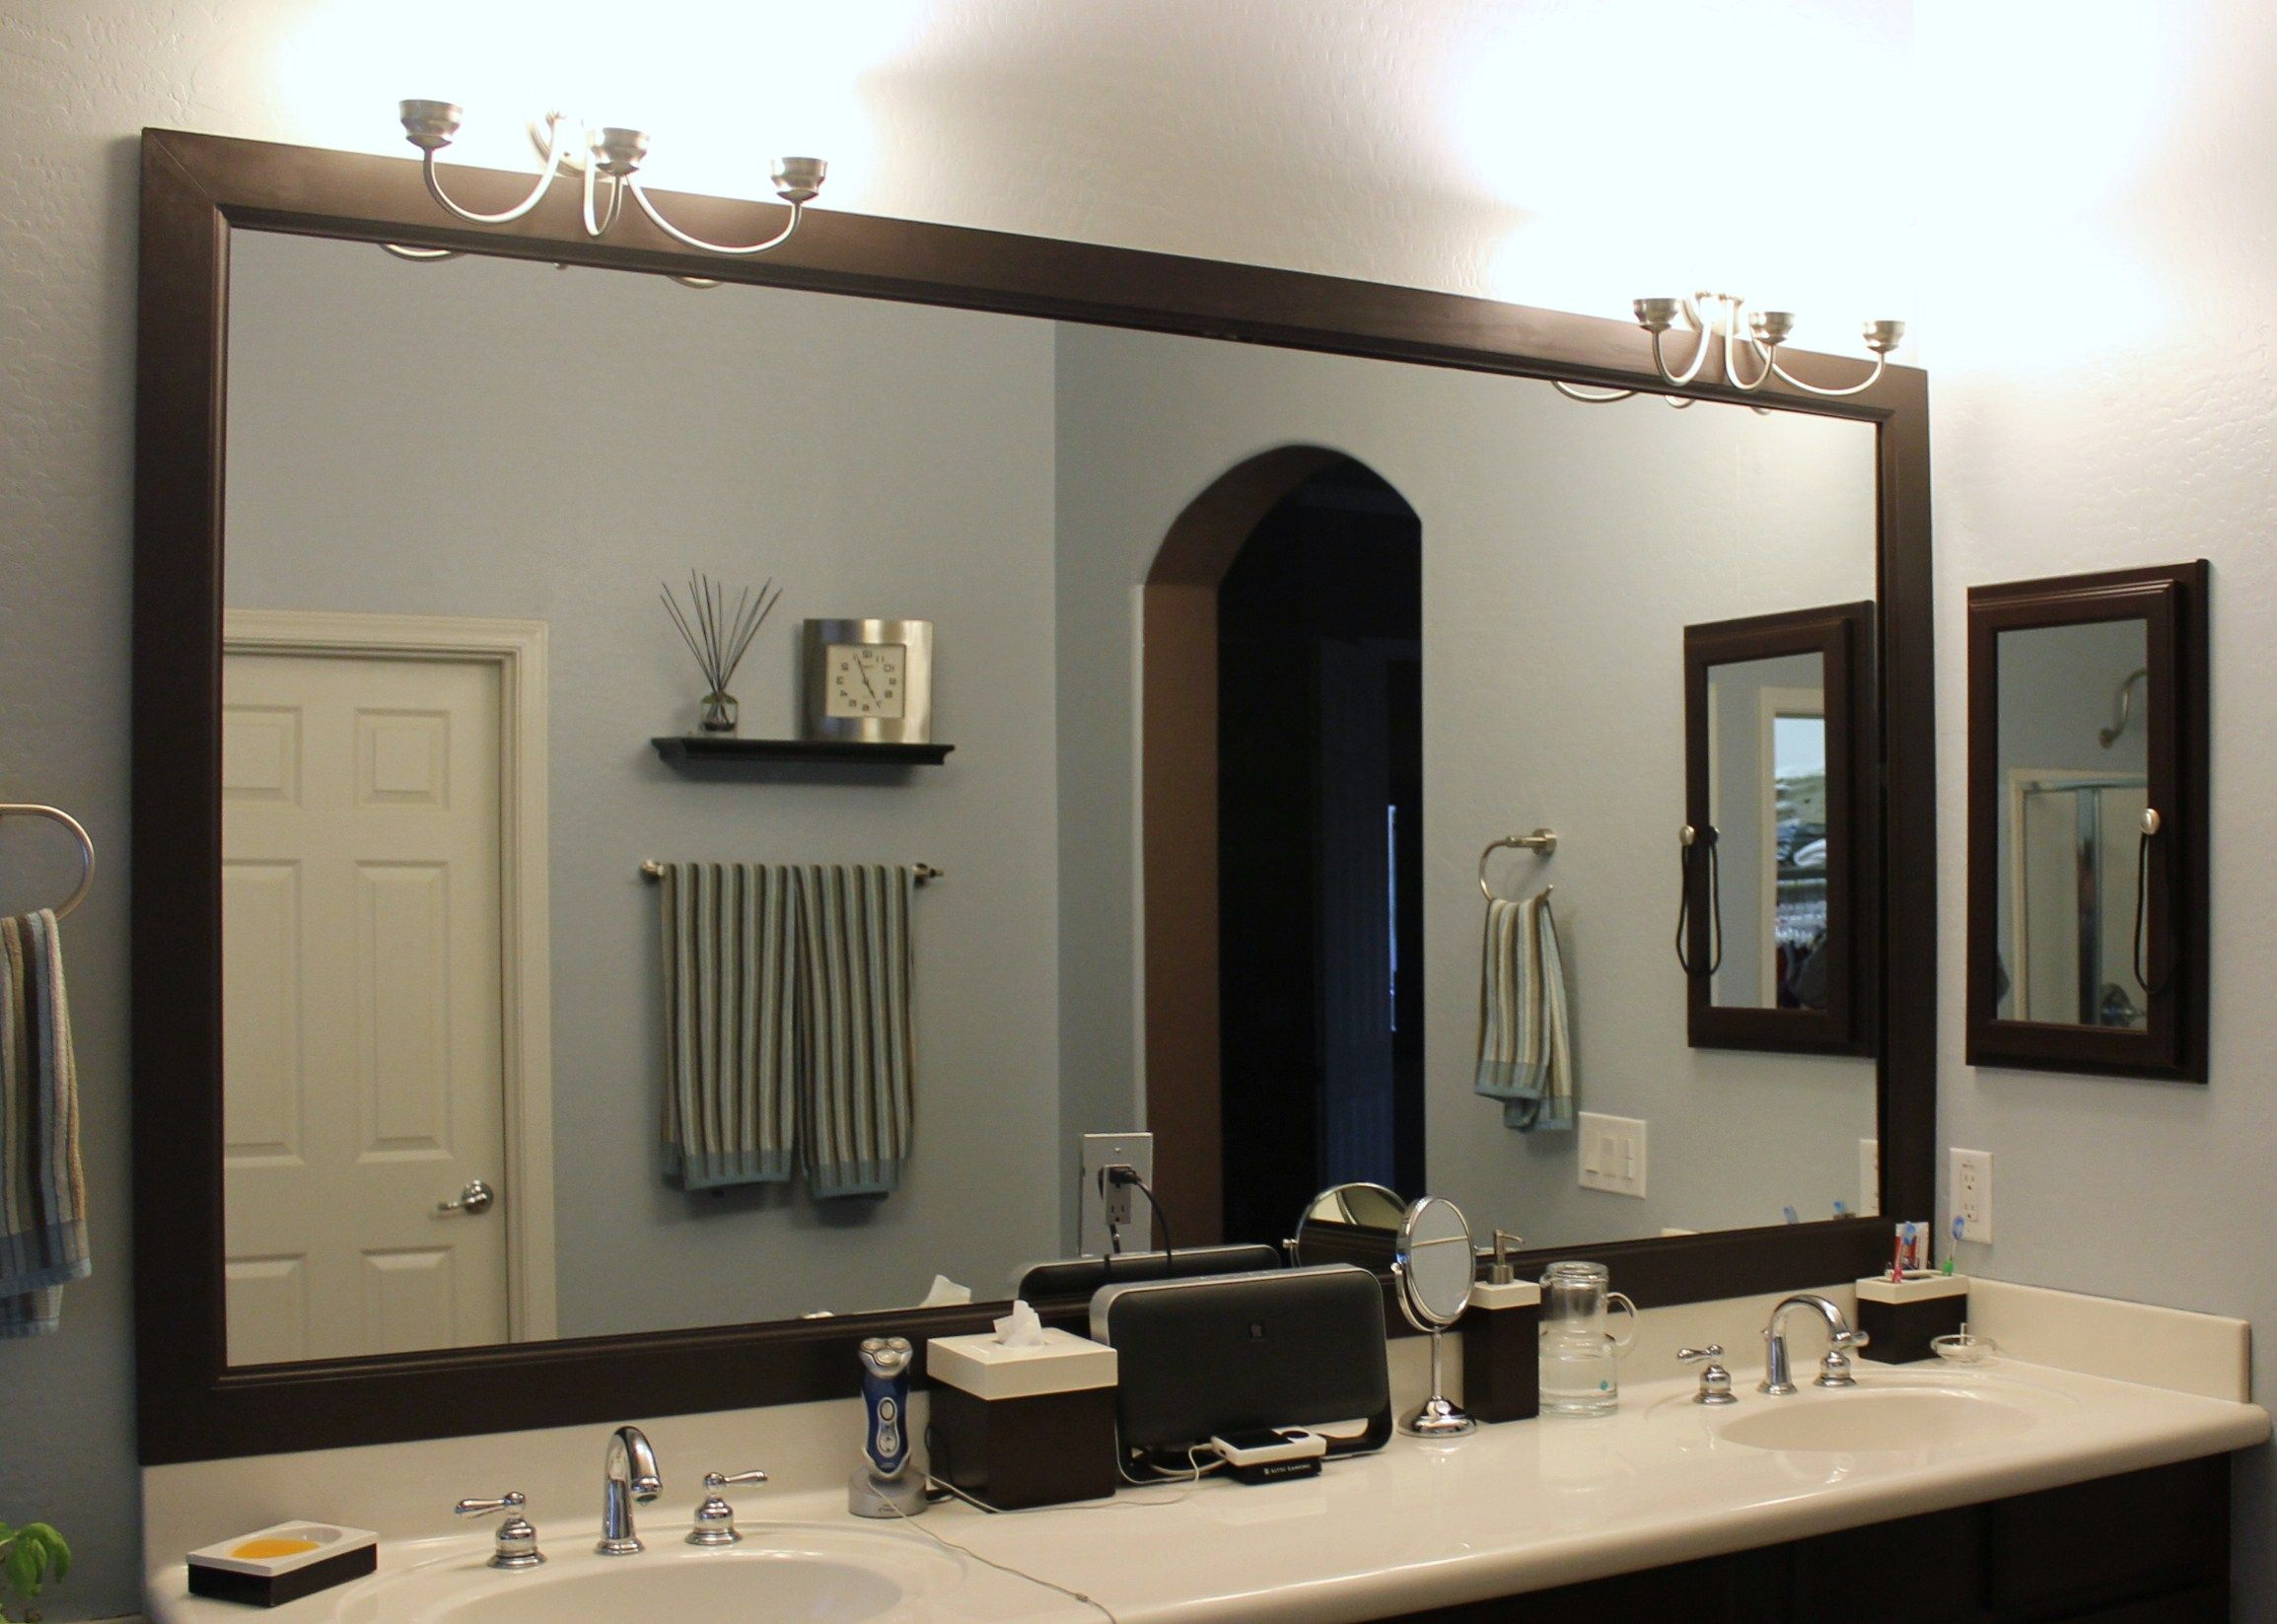 Elegant Framed Mirror For Bathroom And White Vanity Countertop Of